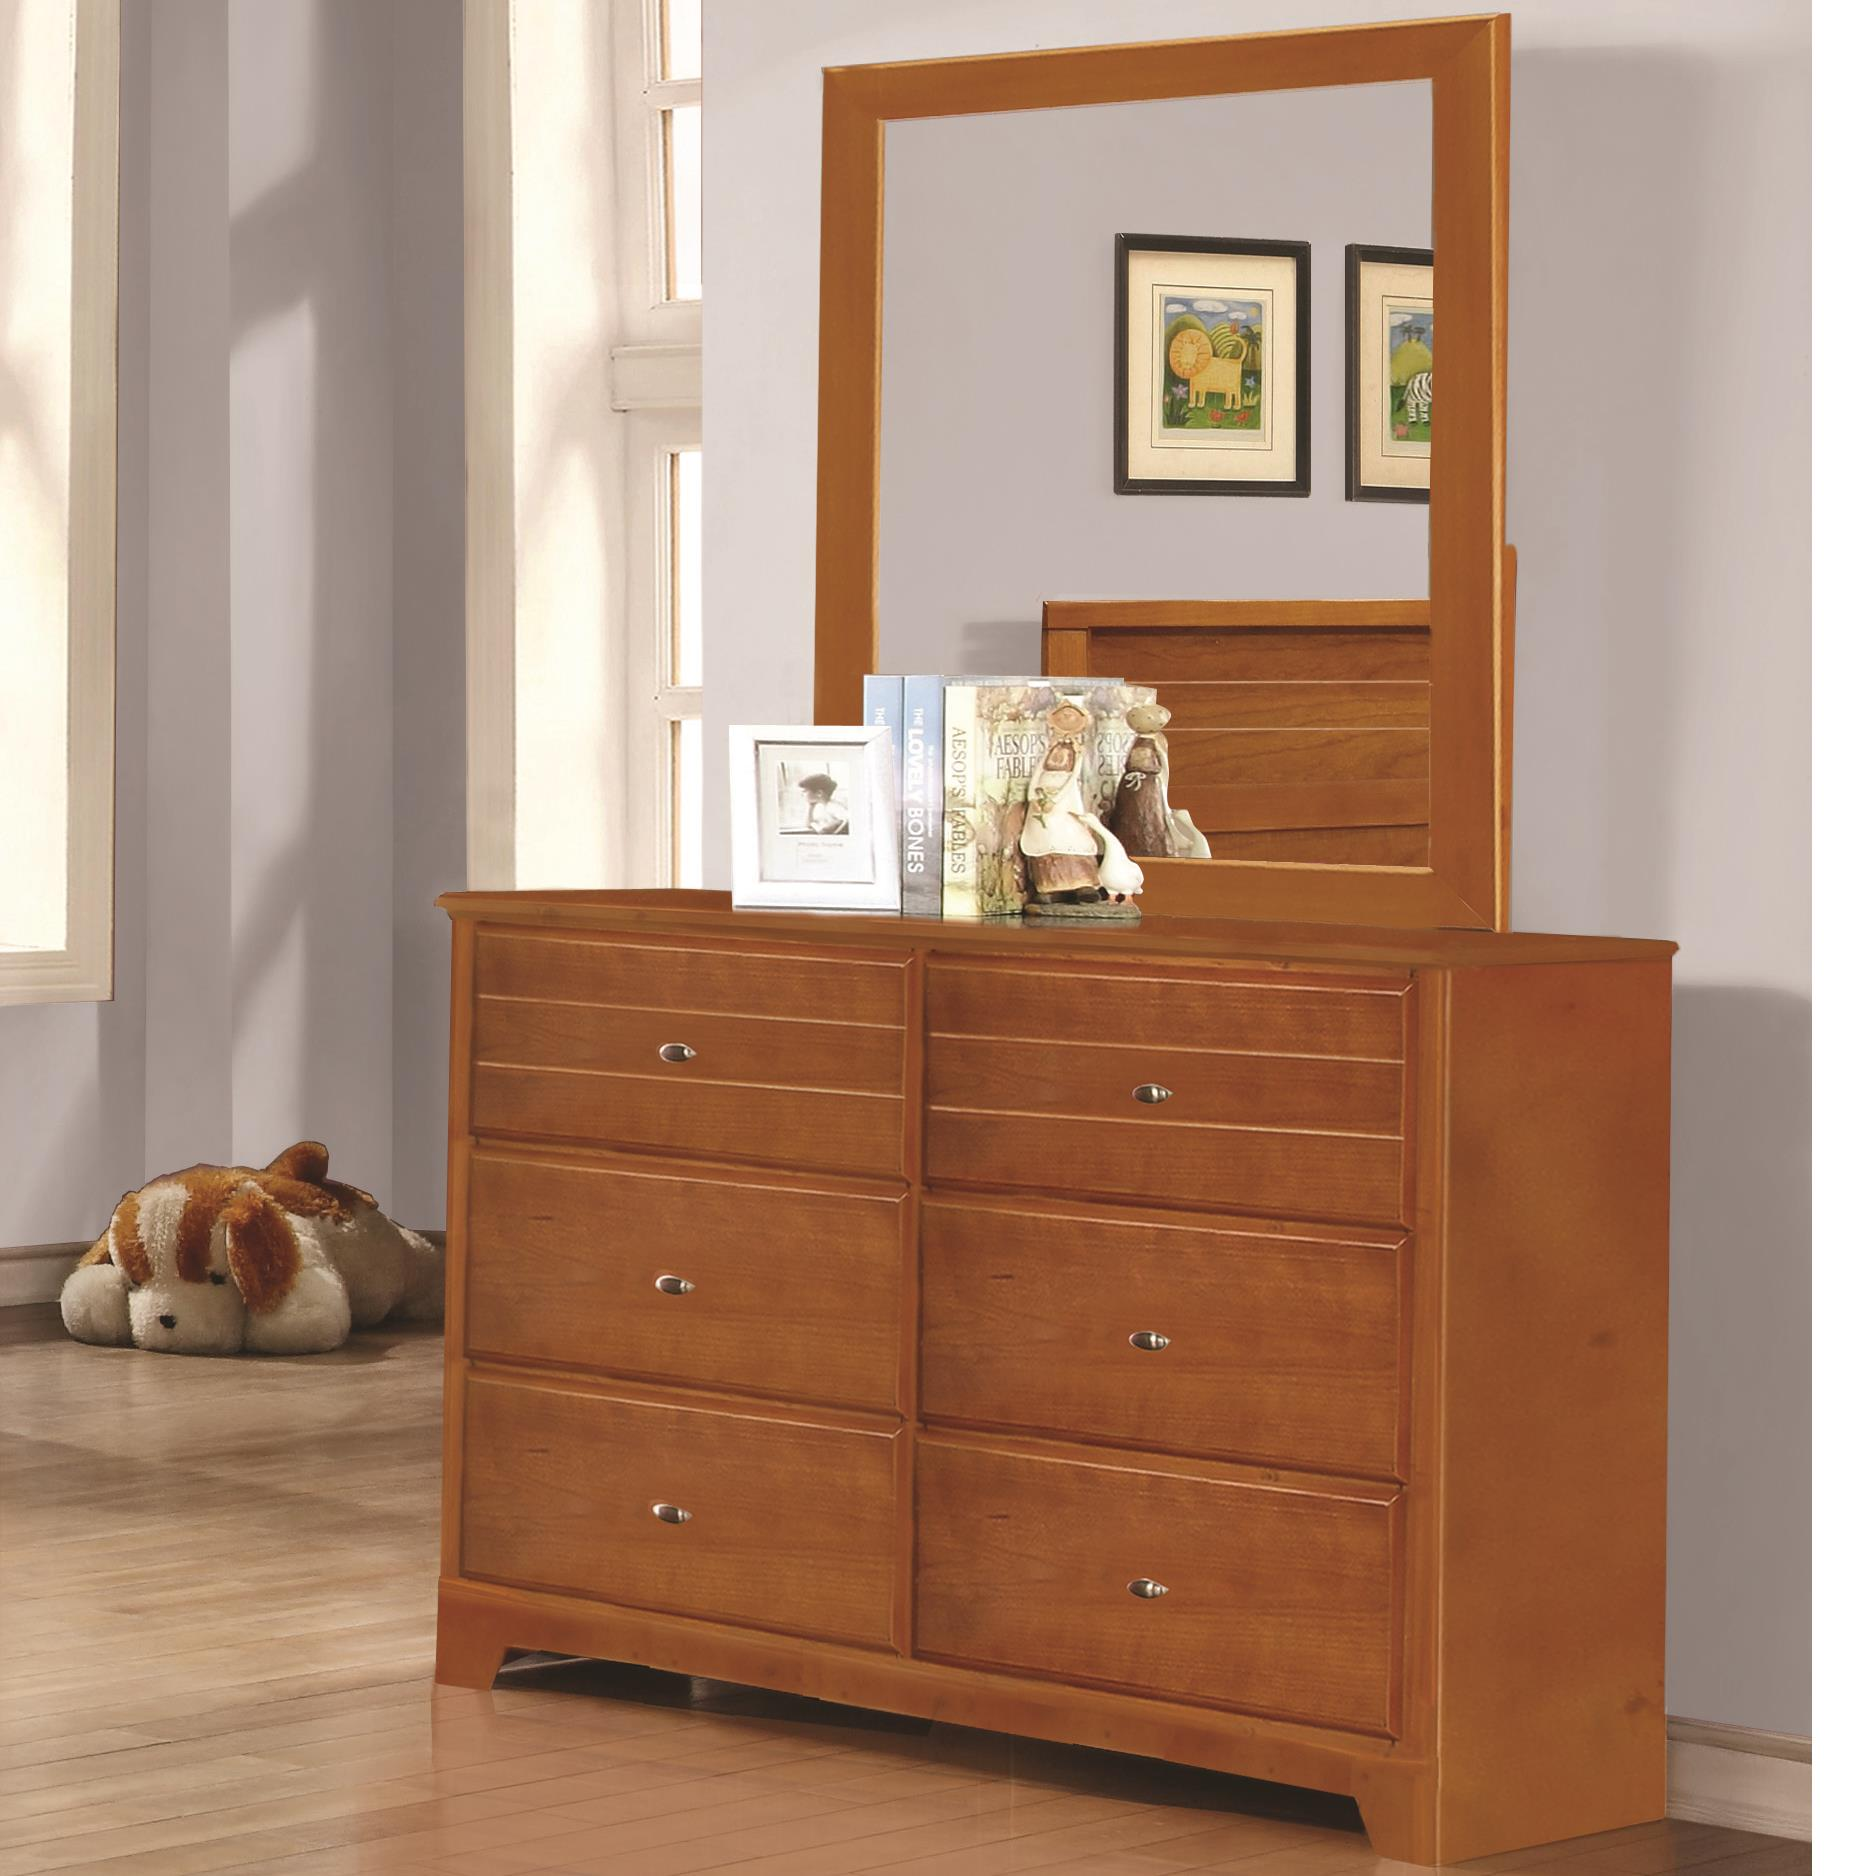 Coaster Ashton Collection Dresser and Mirror - Item Number: 400813+400814